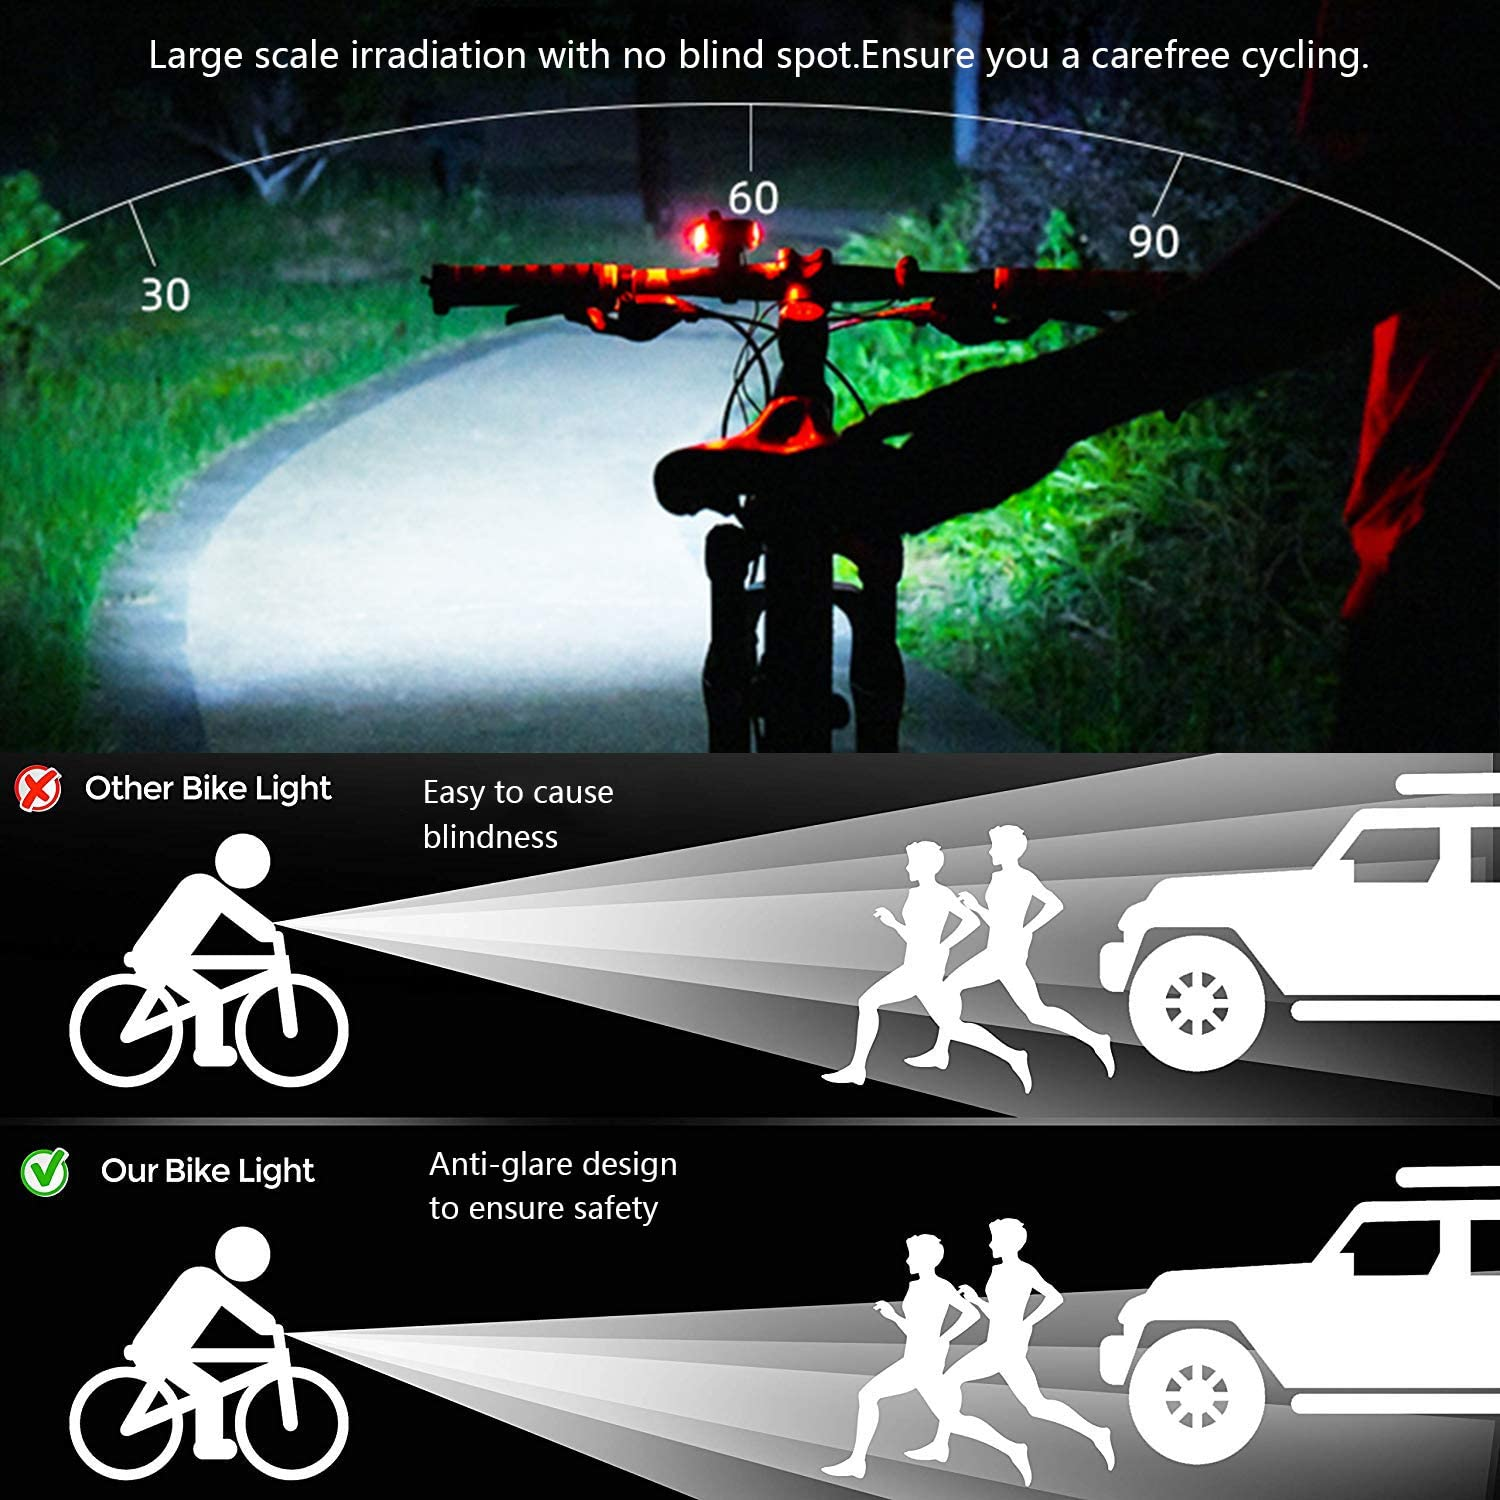 Details about  /60000LM Ultra-Bright LED Cycling Bicycle Front Head Light Bike Lamp Battery Pack